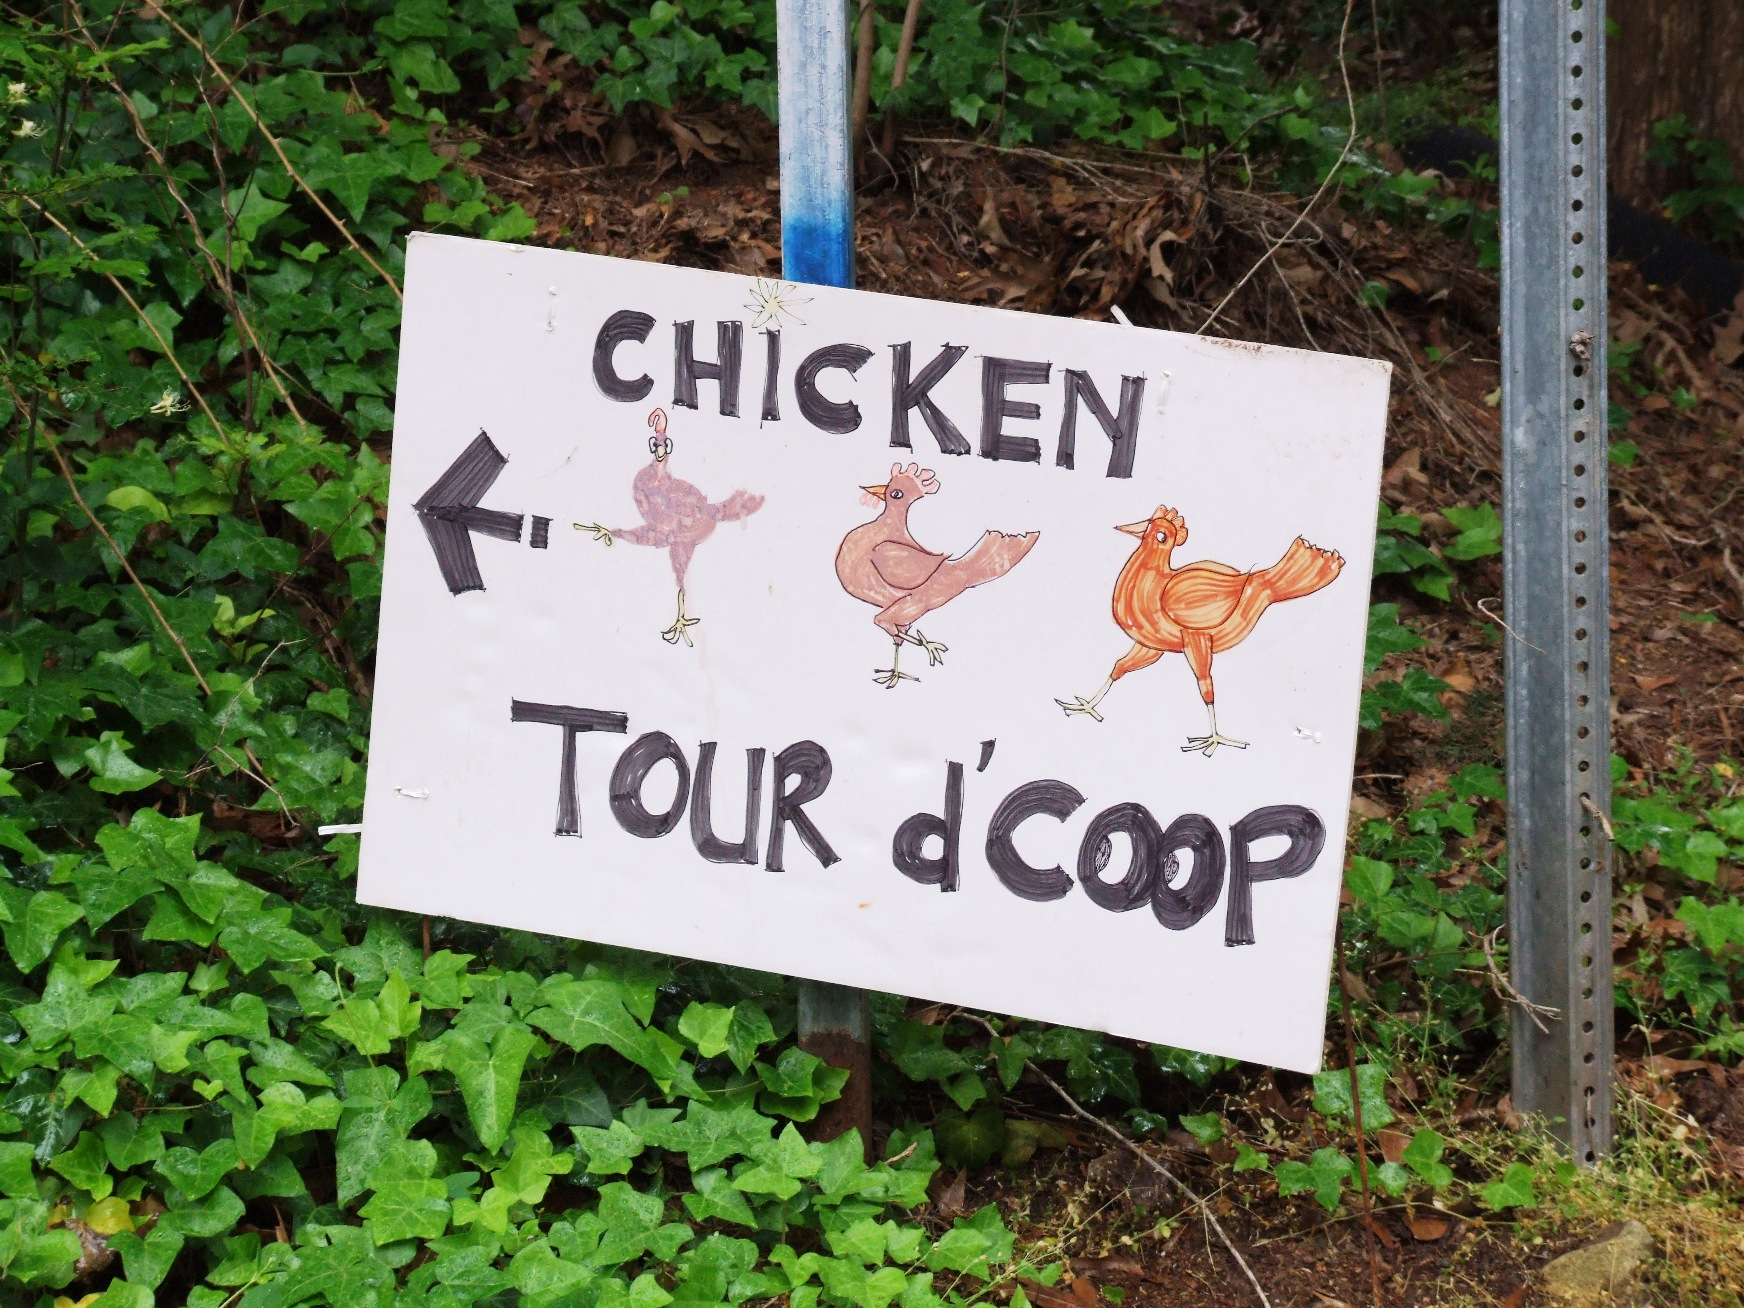 The Tour D'Coop